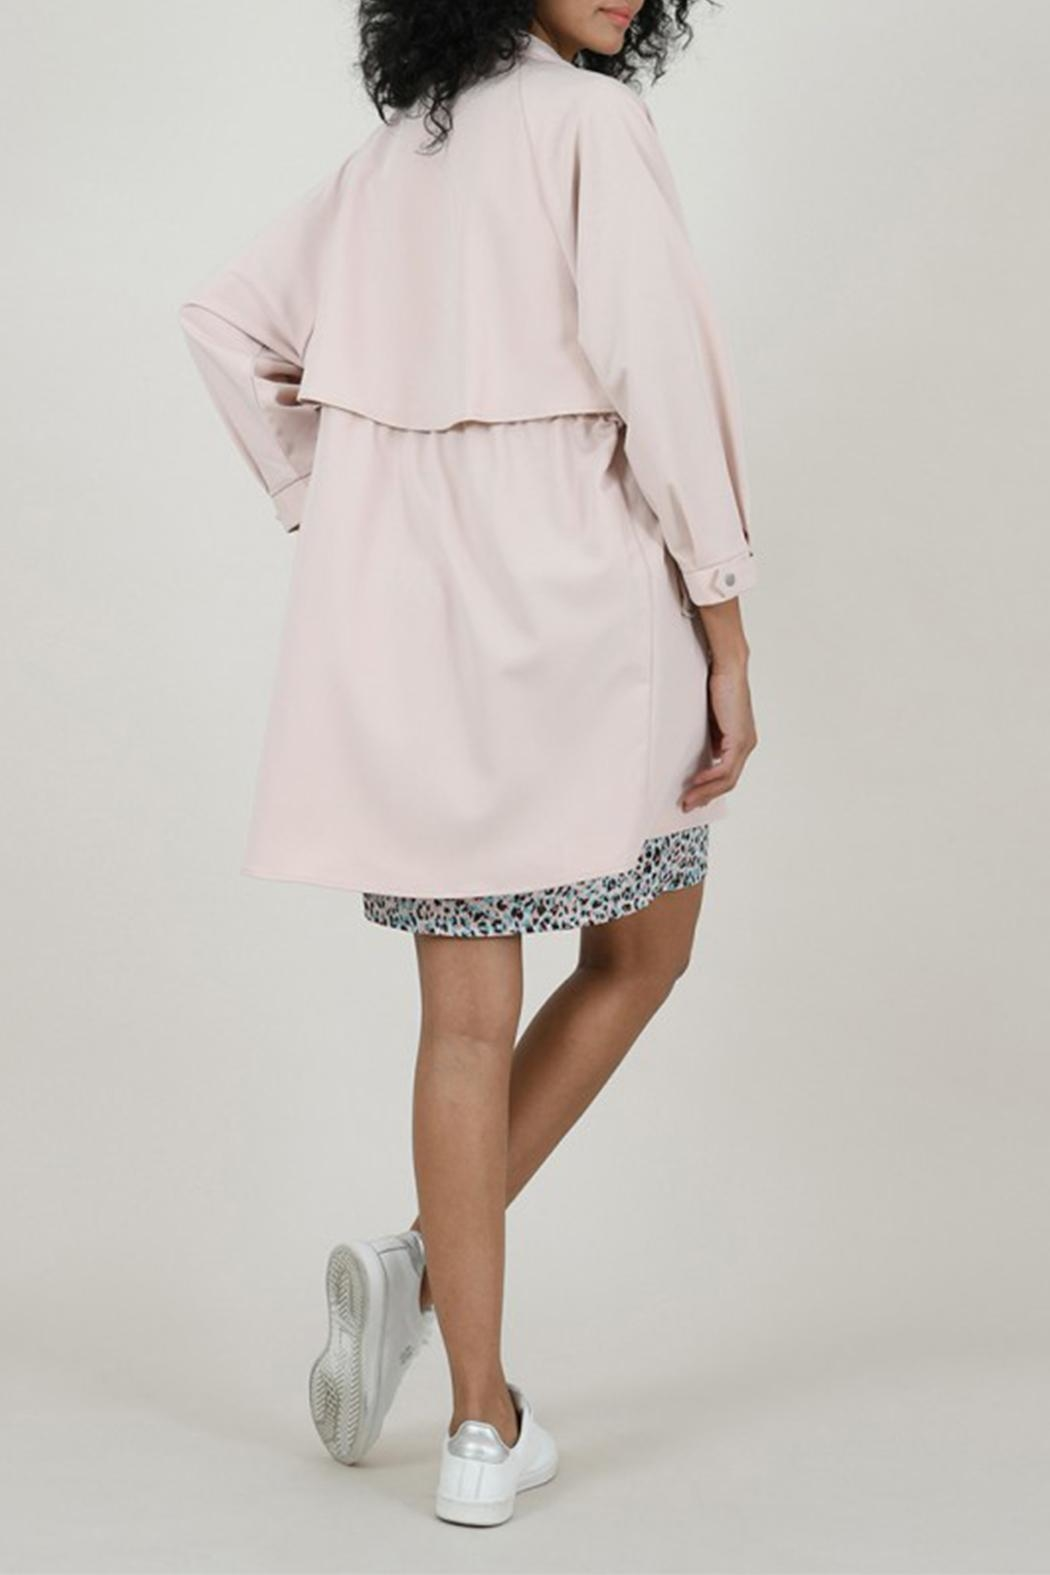 Molly Bracken Crossed Trench Coat - Side Cropped Image